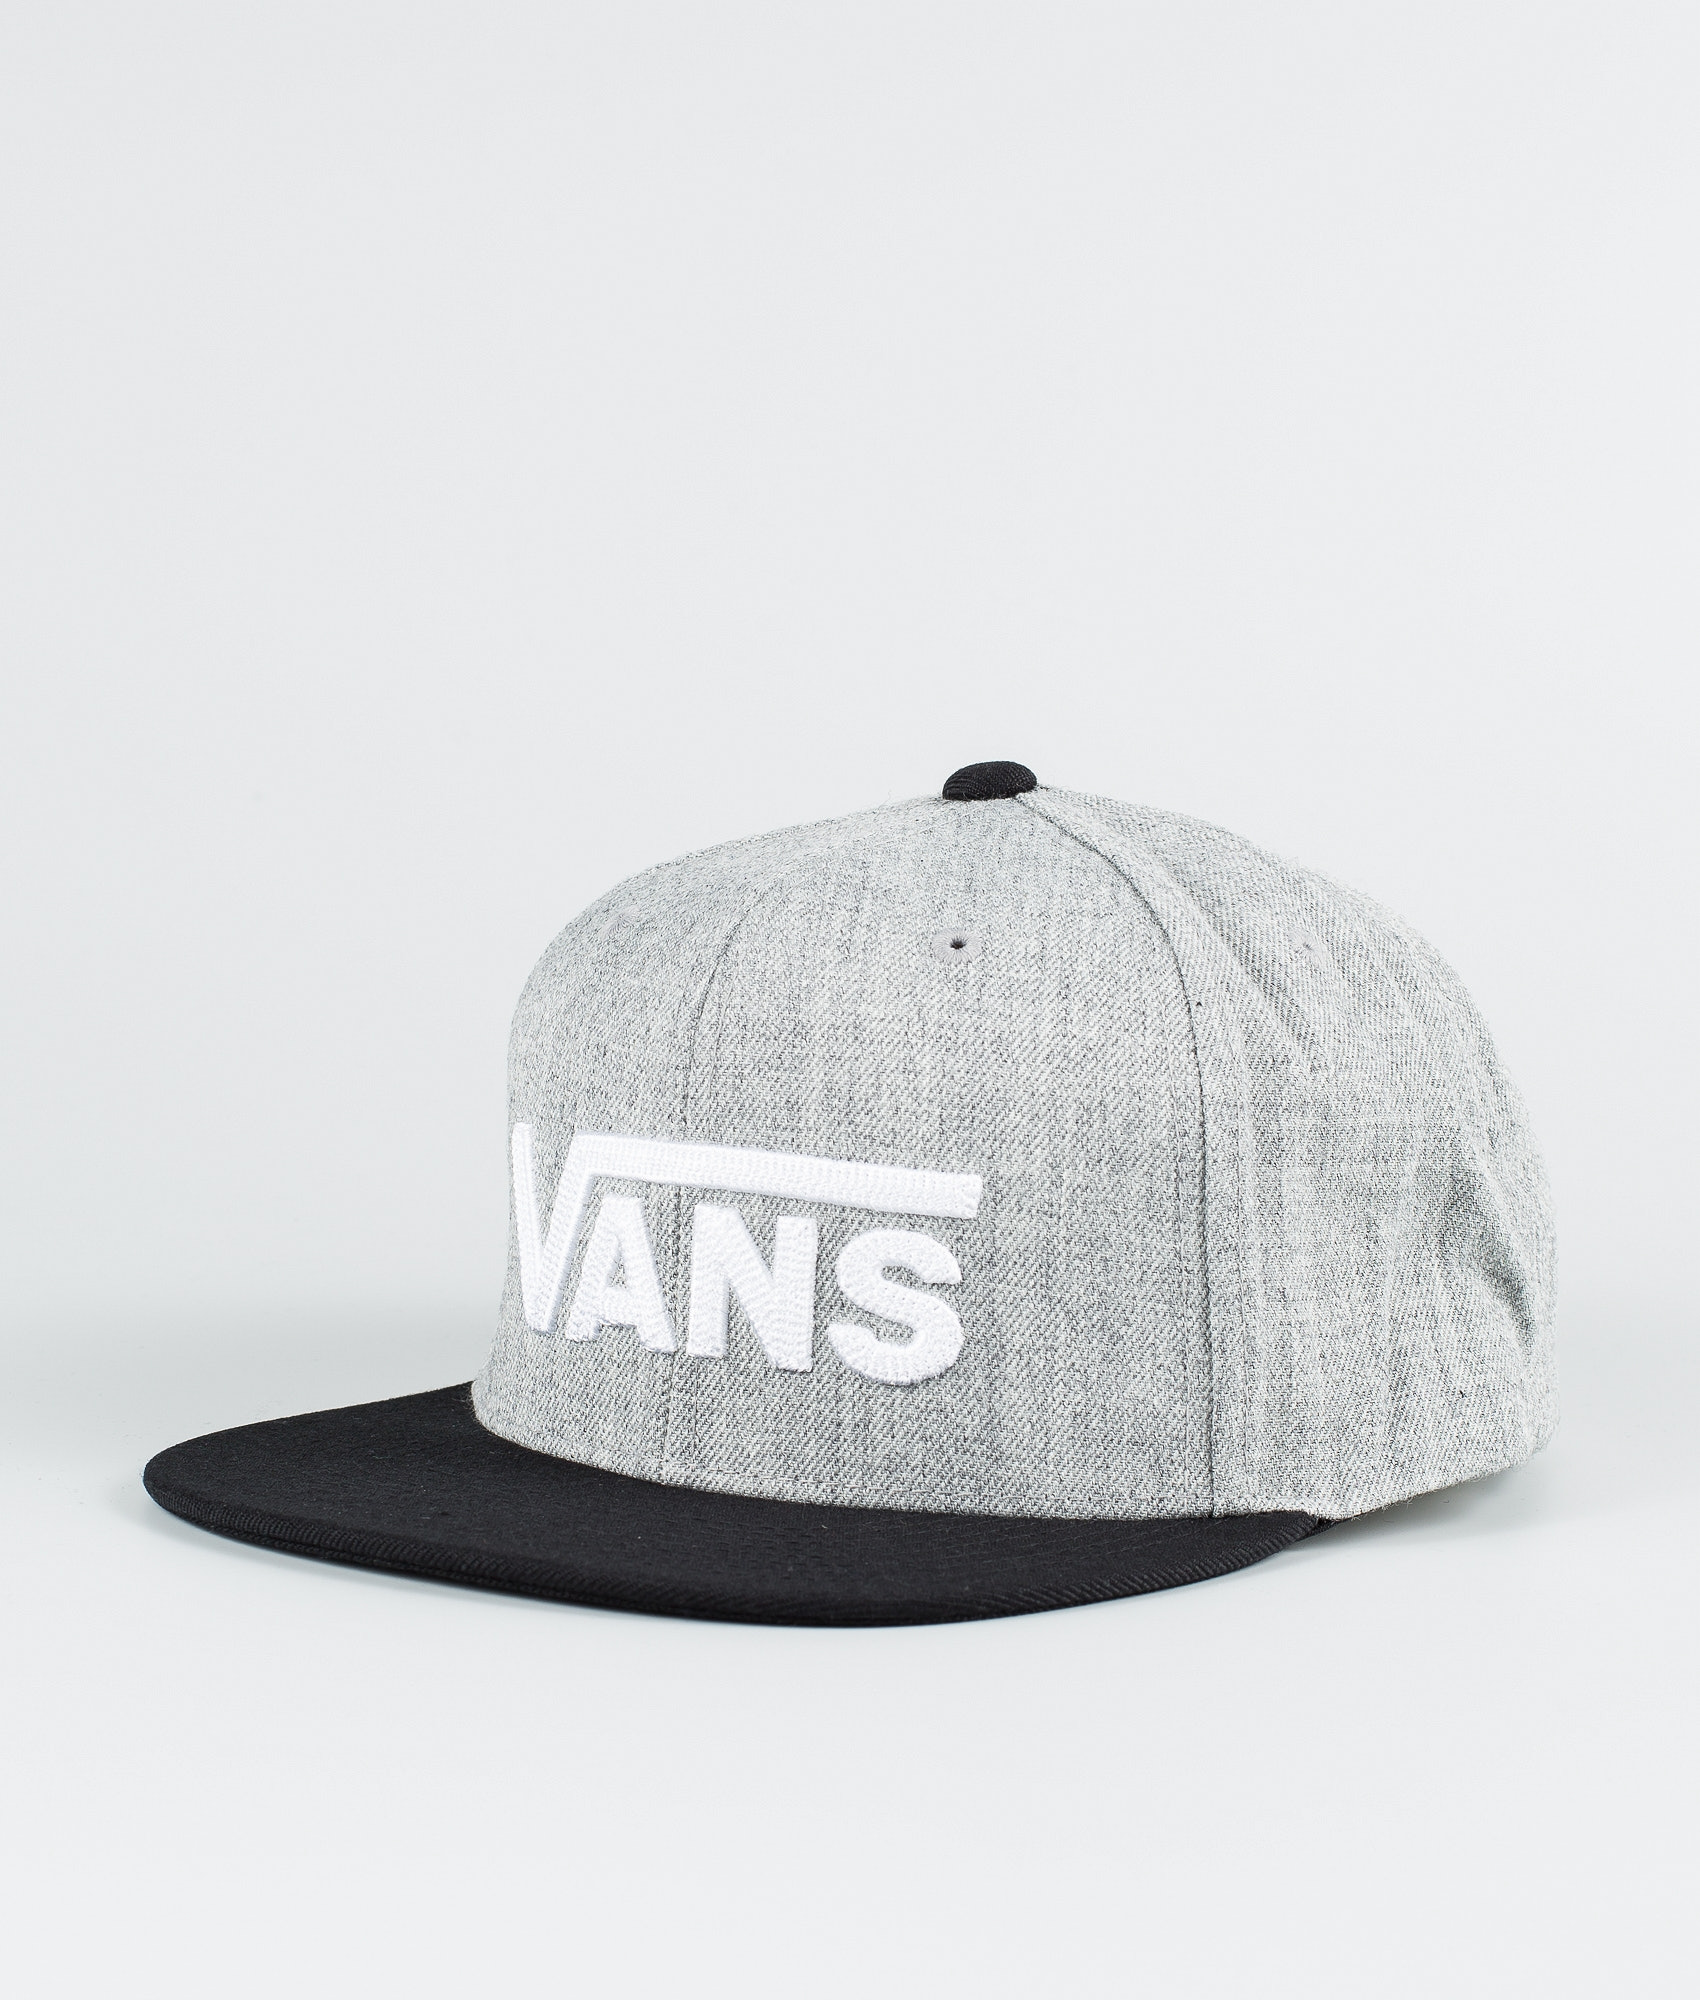 2b7872fa Vans Drop V II Snapback Cap Heather Grey/Black - Ridestore.com